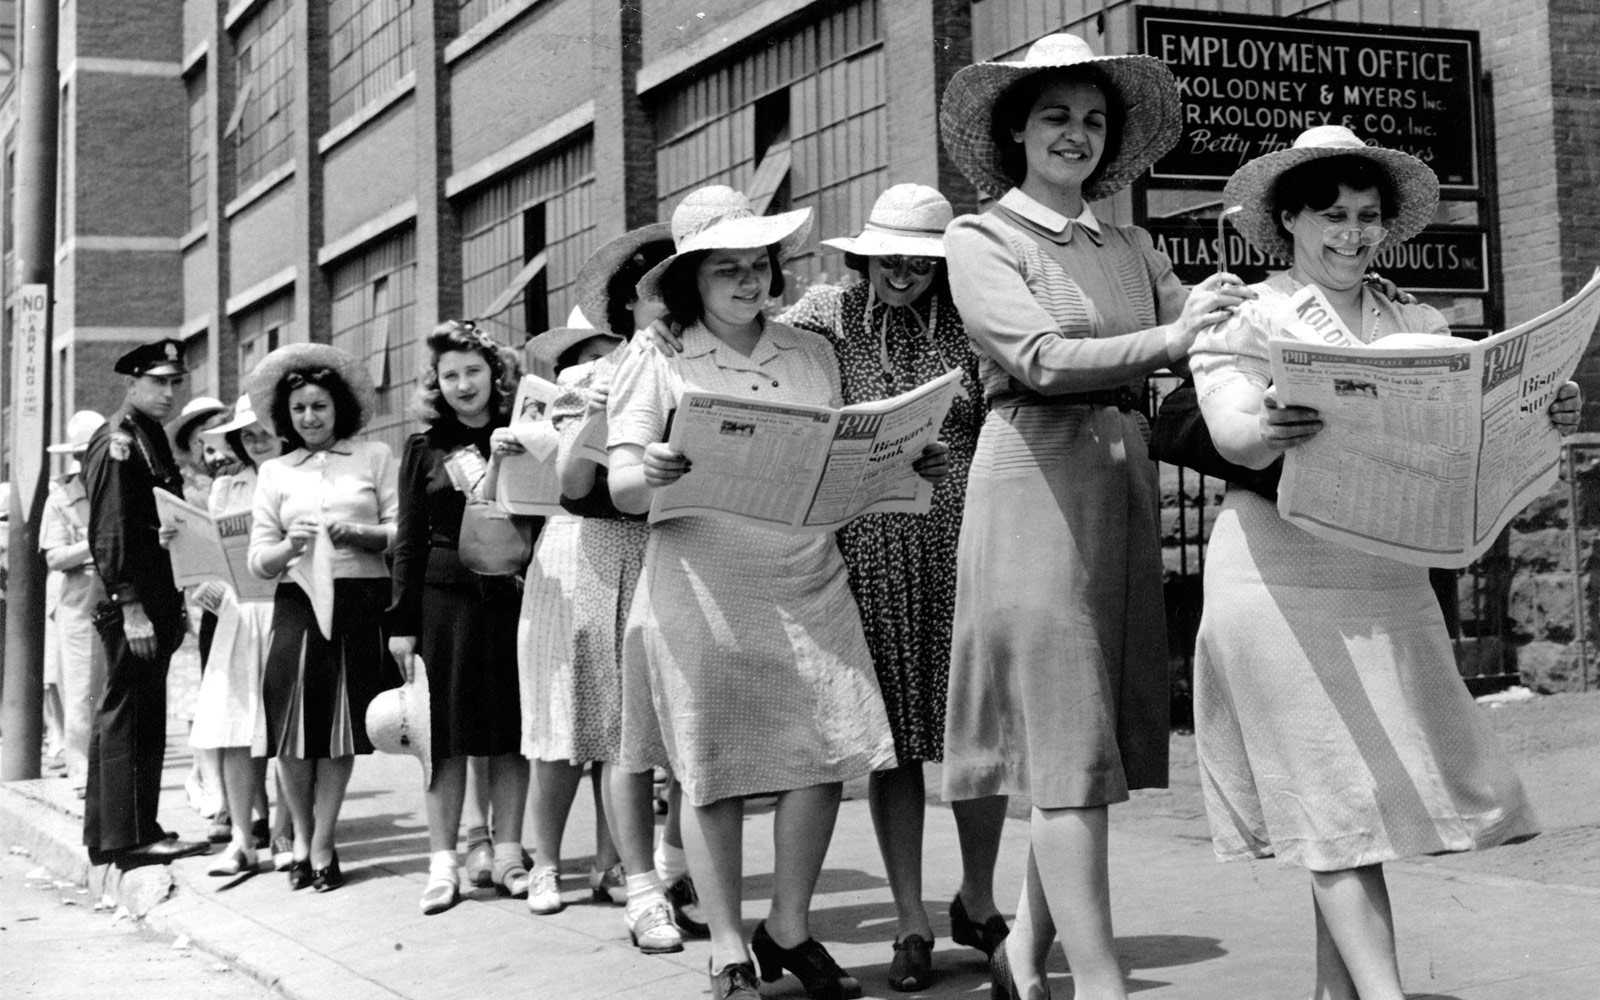 Women standing in a picket line reading the newspaper PM.